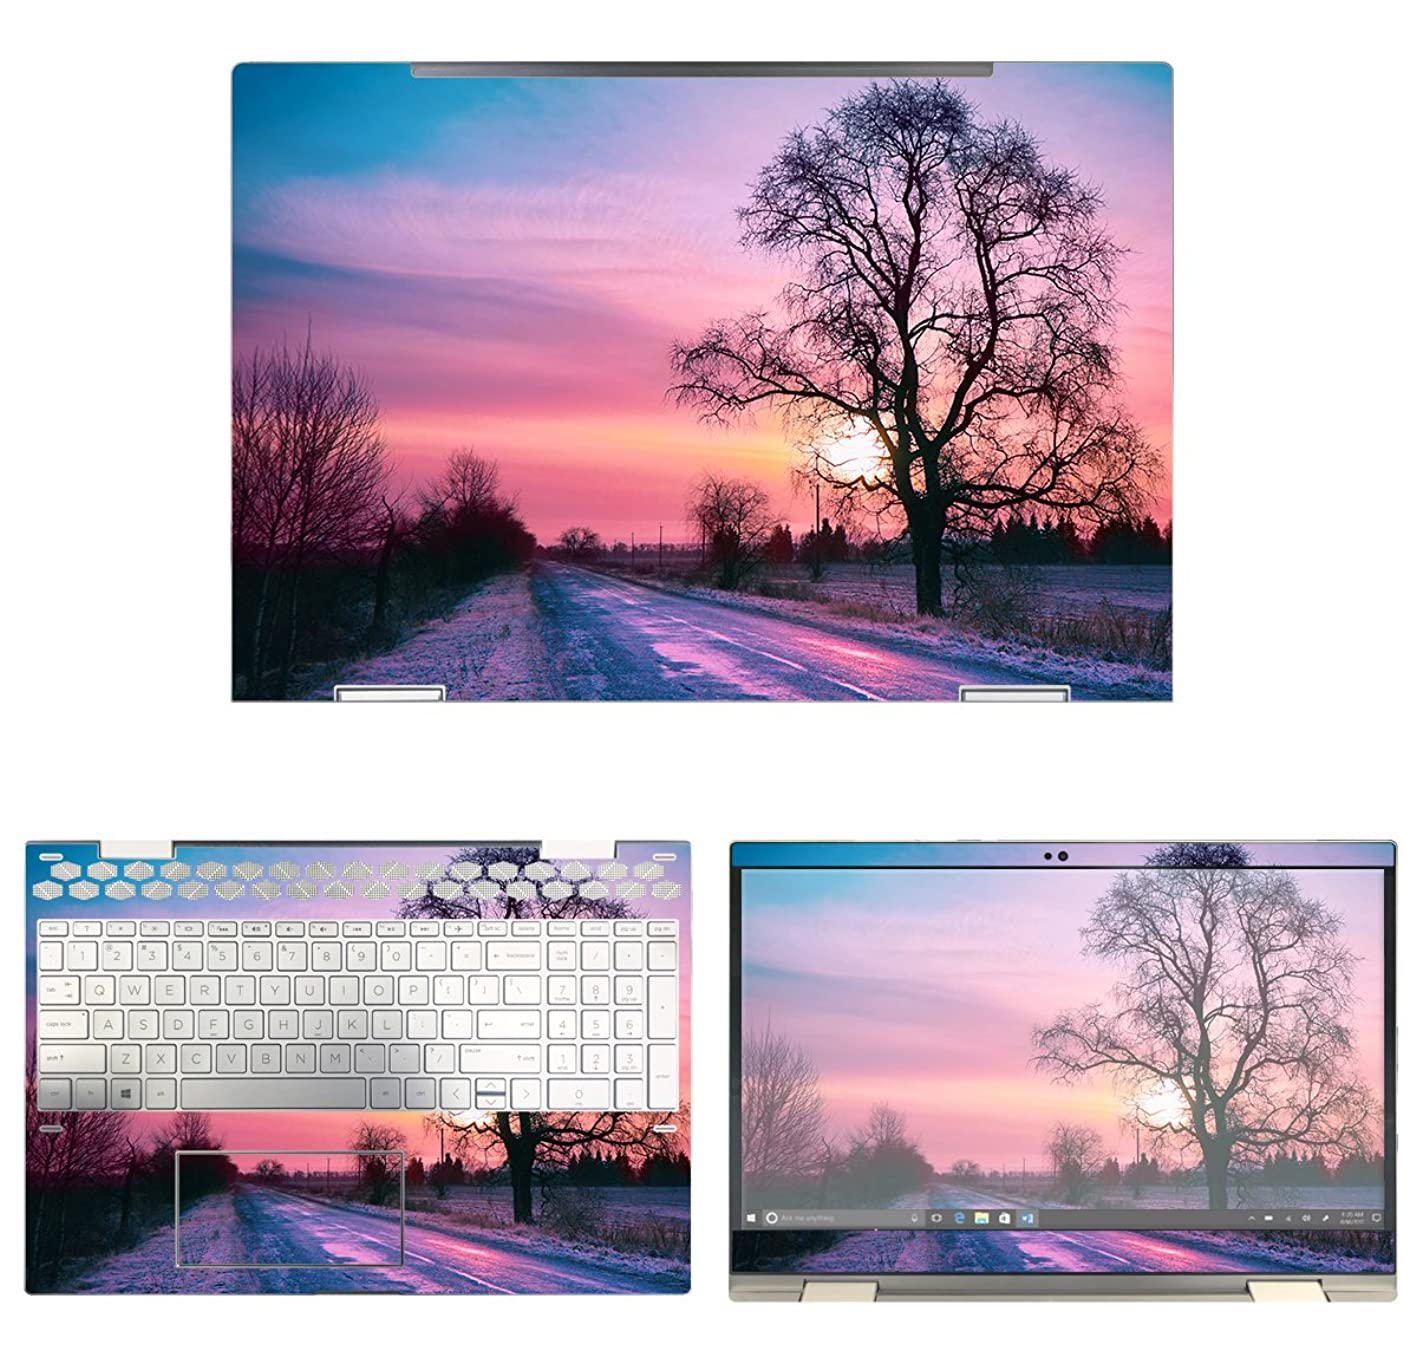 decalrus Protective Decal Sunset Skin Sticker for HP ENVY X360 15M-CN0011DX (15.6